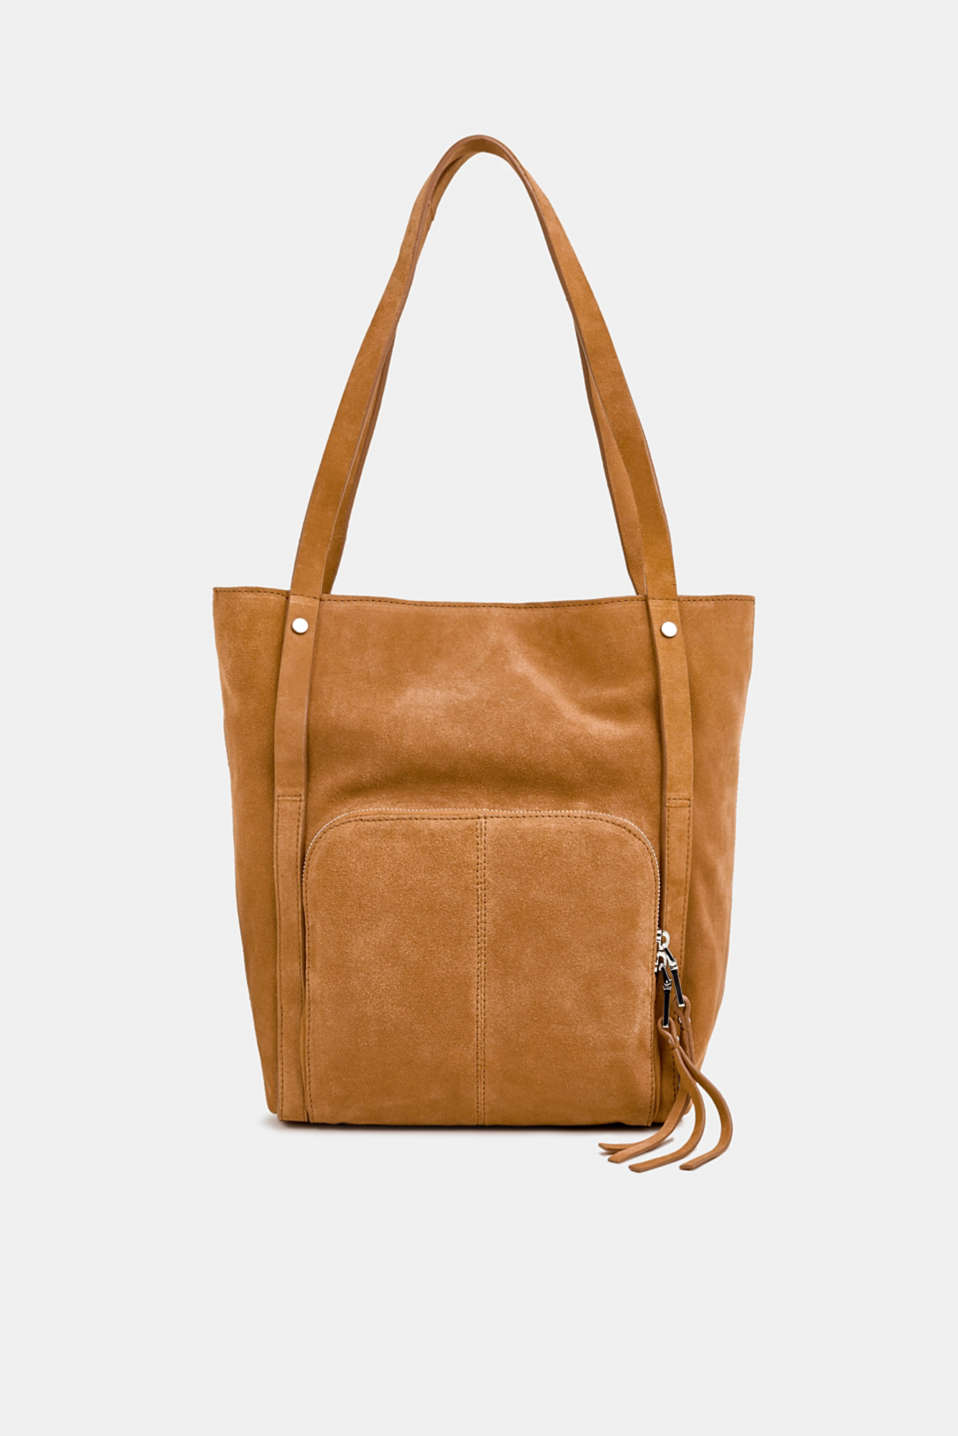 Esprit - Tote bag in pelle